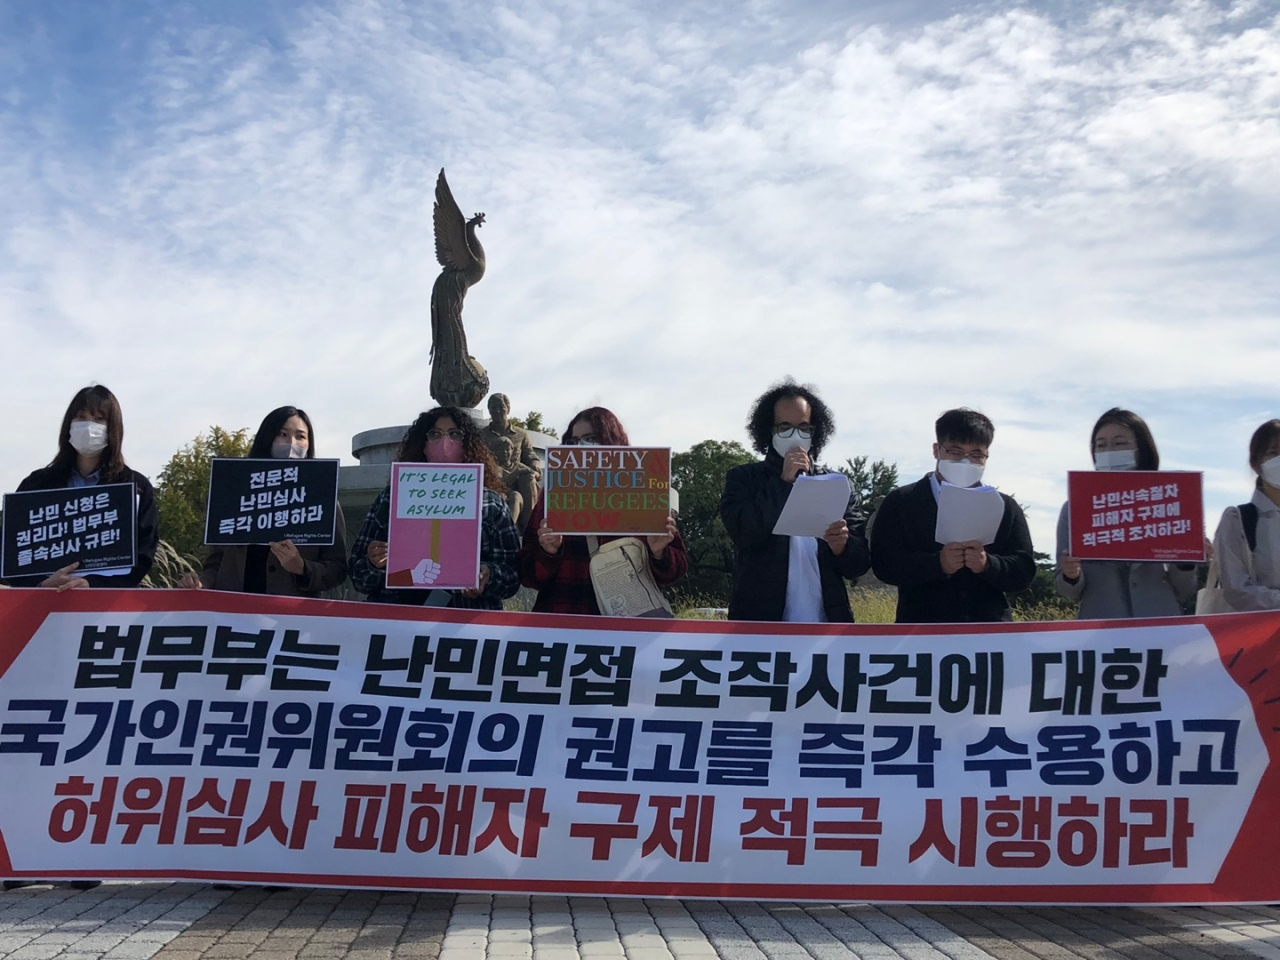 Human rights organizations call on the Ministry of Justice to come up with ways to ensure fairness and transparency in refugee screening processes at a press conference neat the presidential office, Thursday. (Ock Hyun-ju/The Korea Herald)